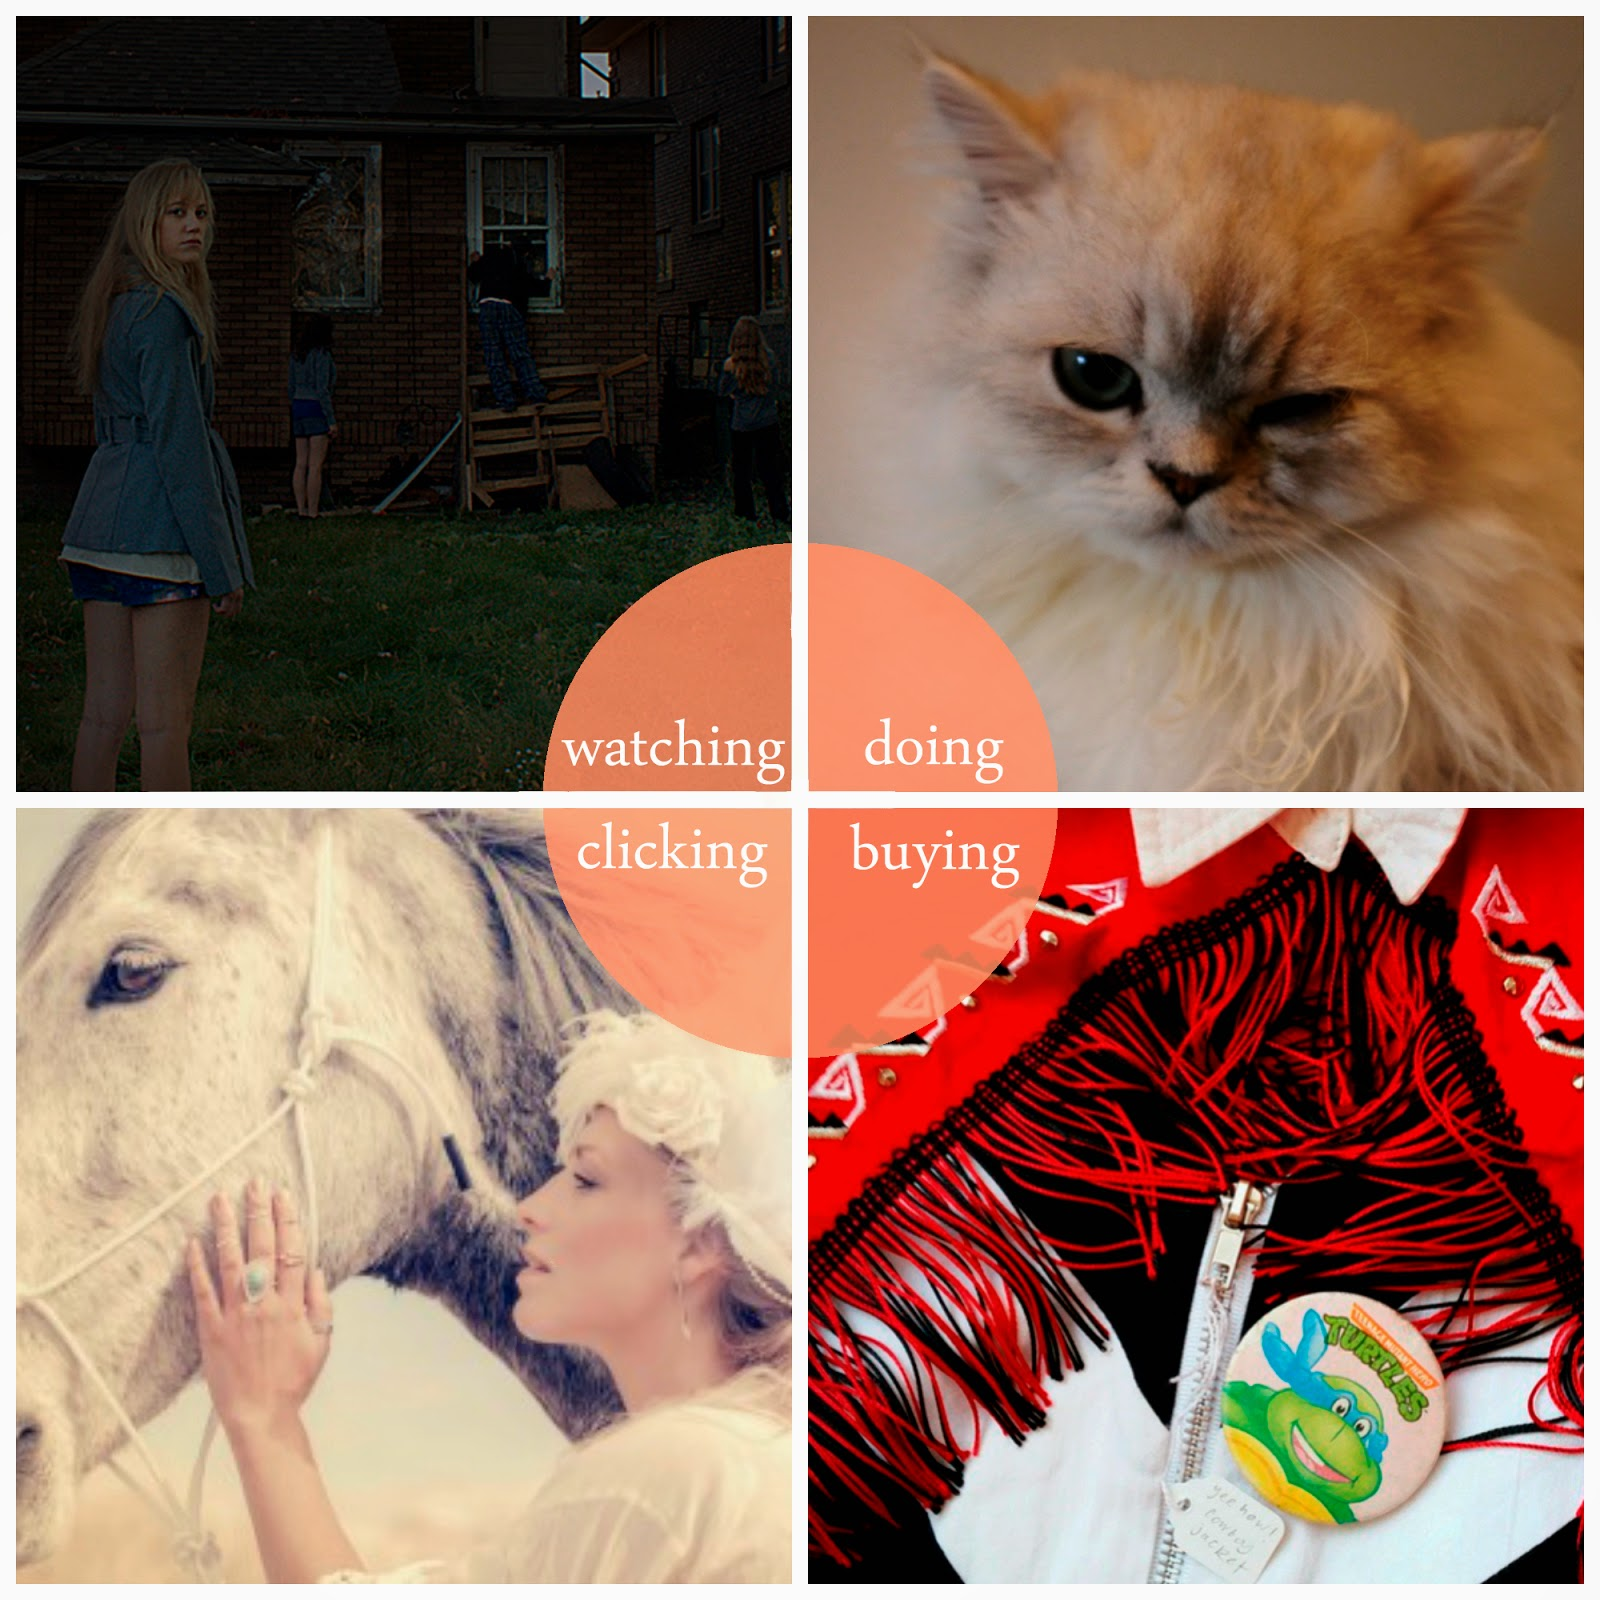 round up, best bits, April, highlights, It Follows, cinema trip, horror movie, Maison de Moggy, Edinburgh Cat Cafe, cat, vintage, Carnaby Market, cowgirl jacket, Neuk vintage, Bloody Mary Metal, BMM, TeamBMM, Wild Horses